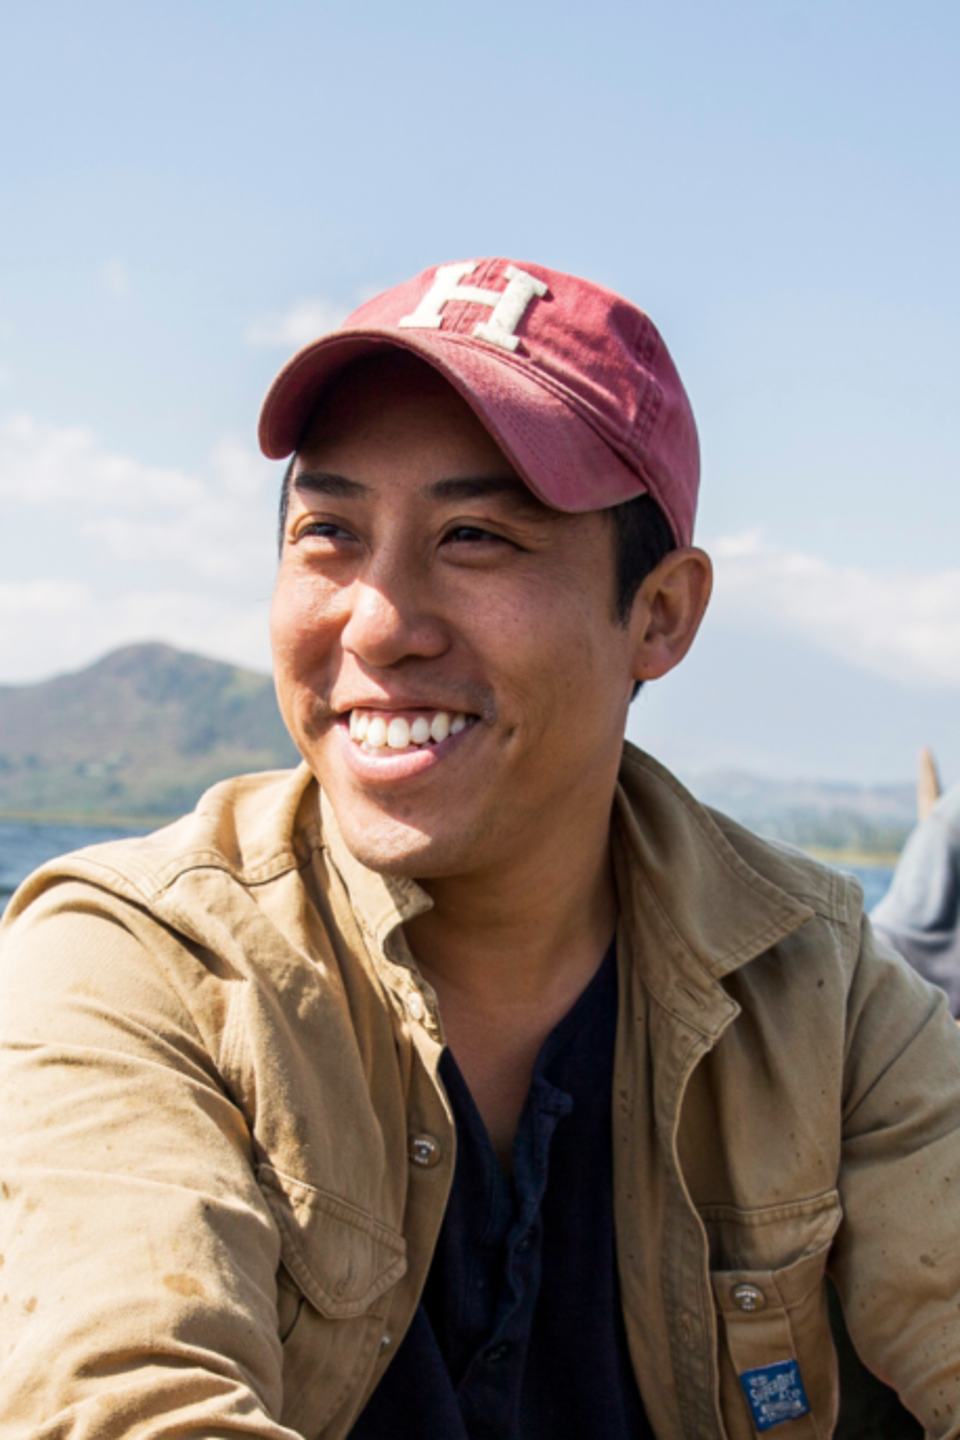 Shawn Cheung who is the Founder and CEO of Raising The Village